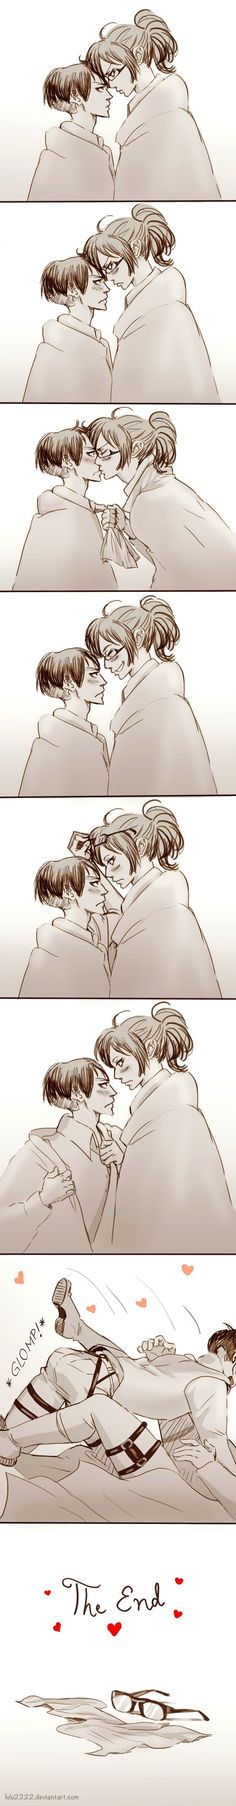 Honestly my otp of Attack on Titan. Like, Idgaf about Ereri or whatever (it's my notp), but HanjixLevi is probably the cutest thing. Attack On Titan Funny, Attack On Titan Ships, Attack On Titan Fanart, Otp, Hanji And Levi, Eremika, Levihan, I Ship It, Titans Anime